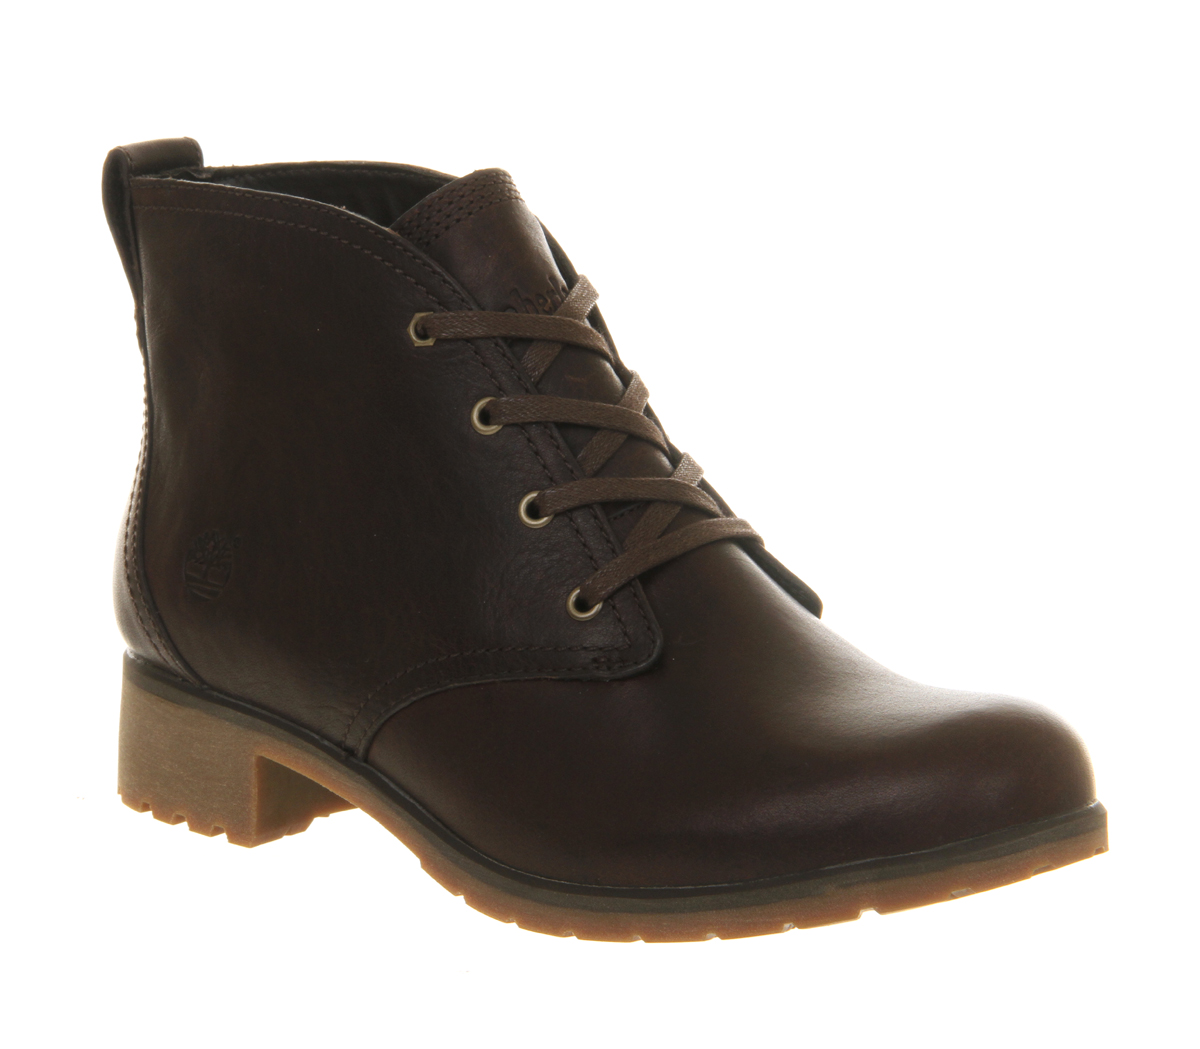 Brilliant Feel Just A Tad Bikergirl Tough In The Handsome Timberland Earthkeepers Bethel Ankle Boot Accented With Constrasting Stitching And A Decorative Buckle Strap, This Womens Ankle Boot Goes To Great Distances Thanks To It Premium Full